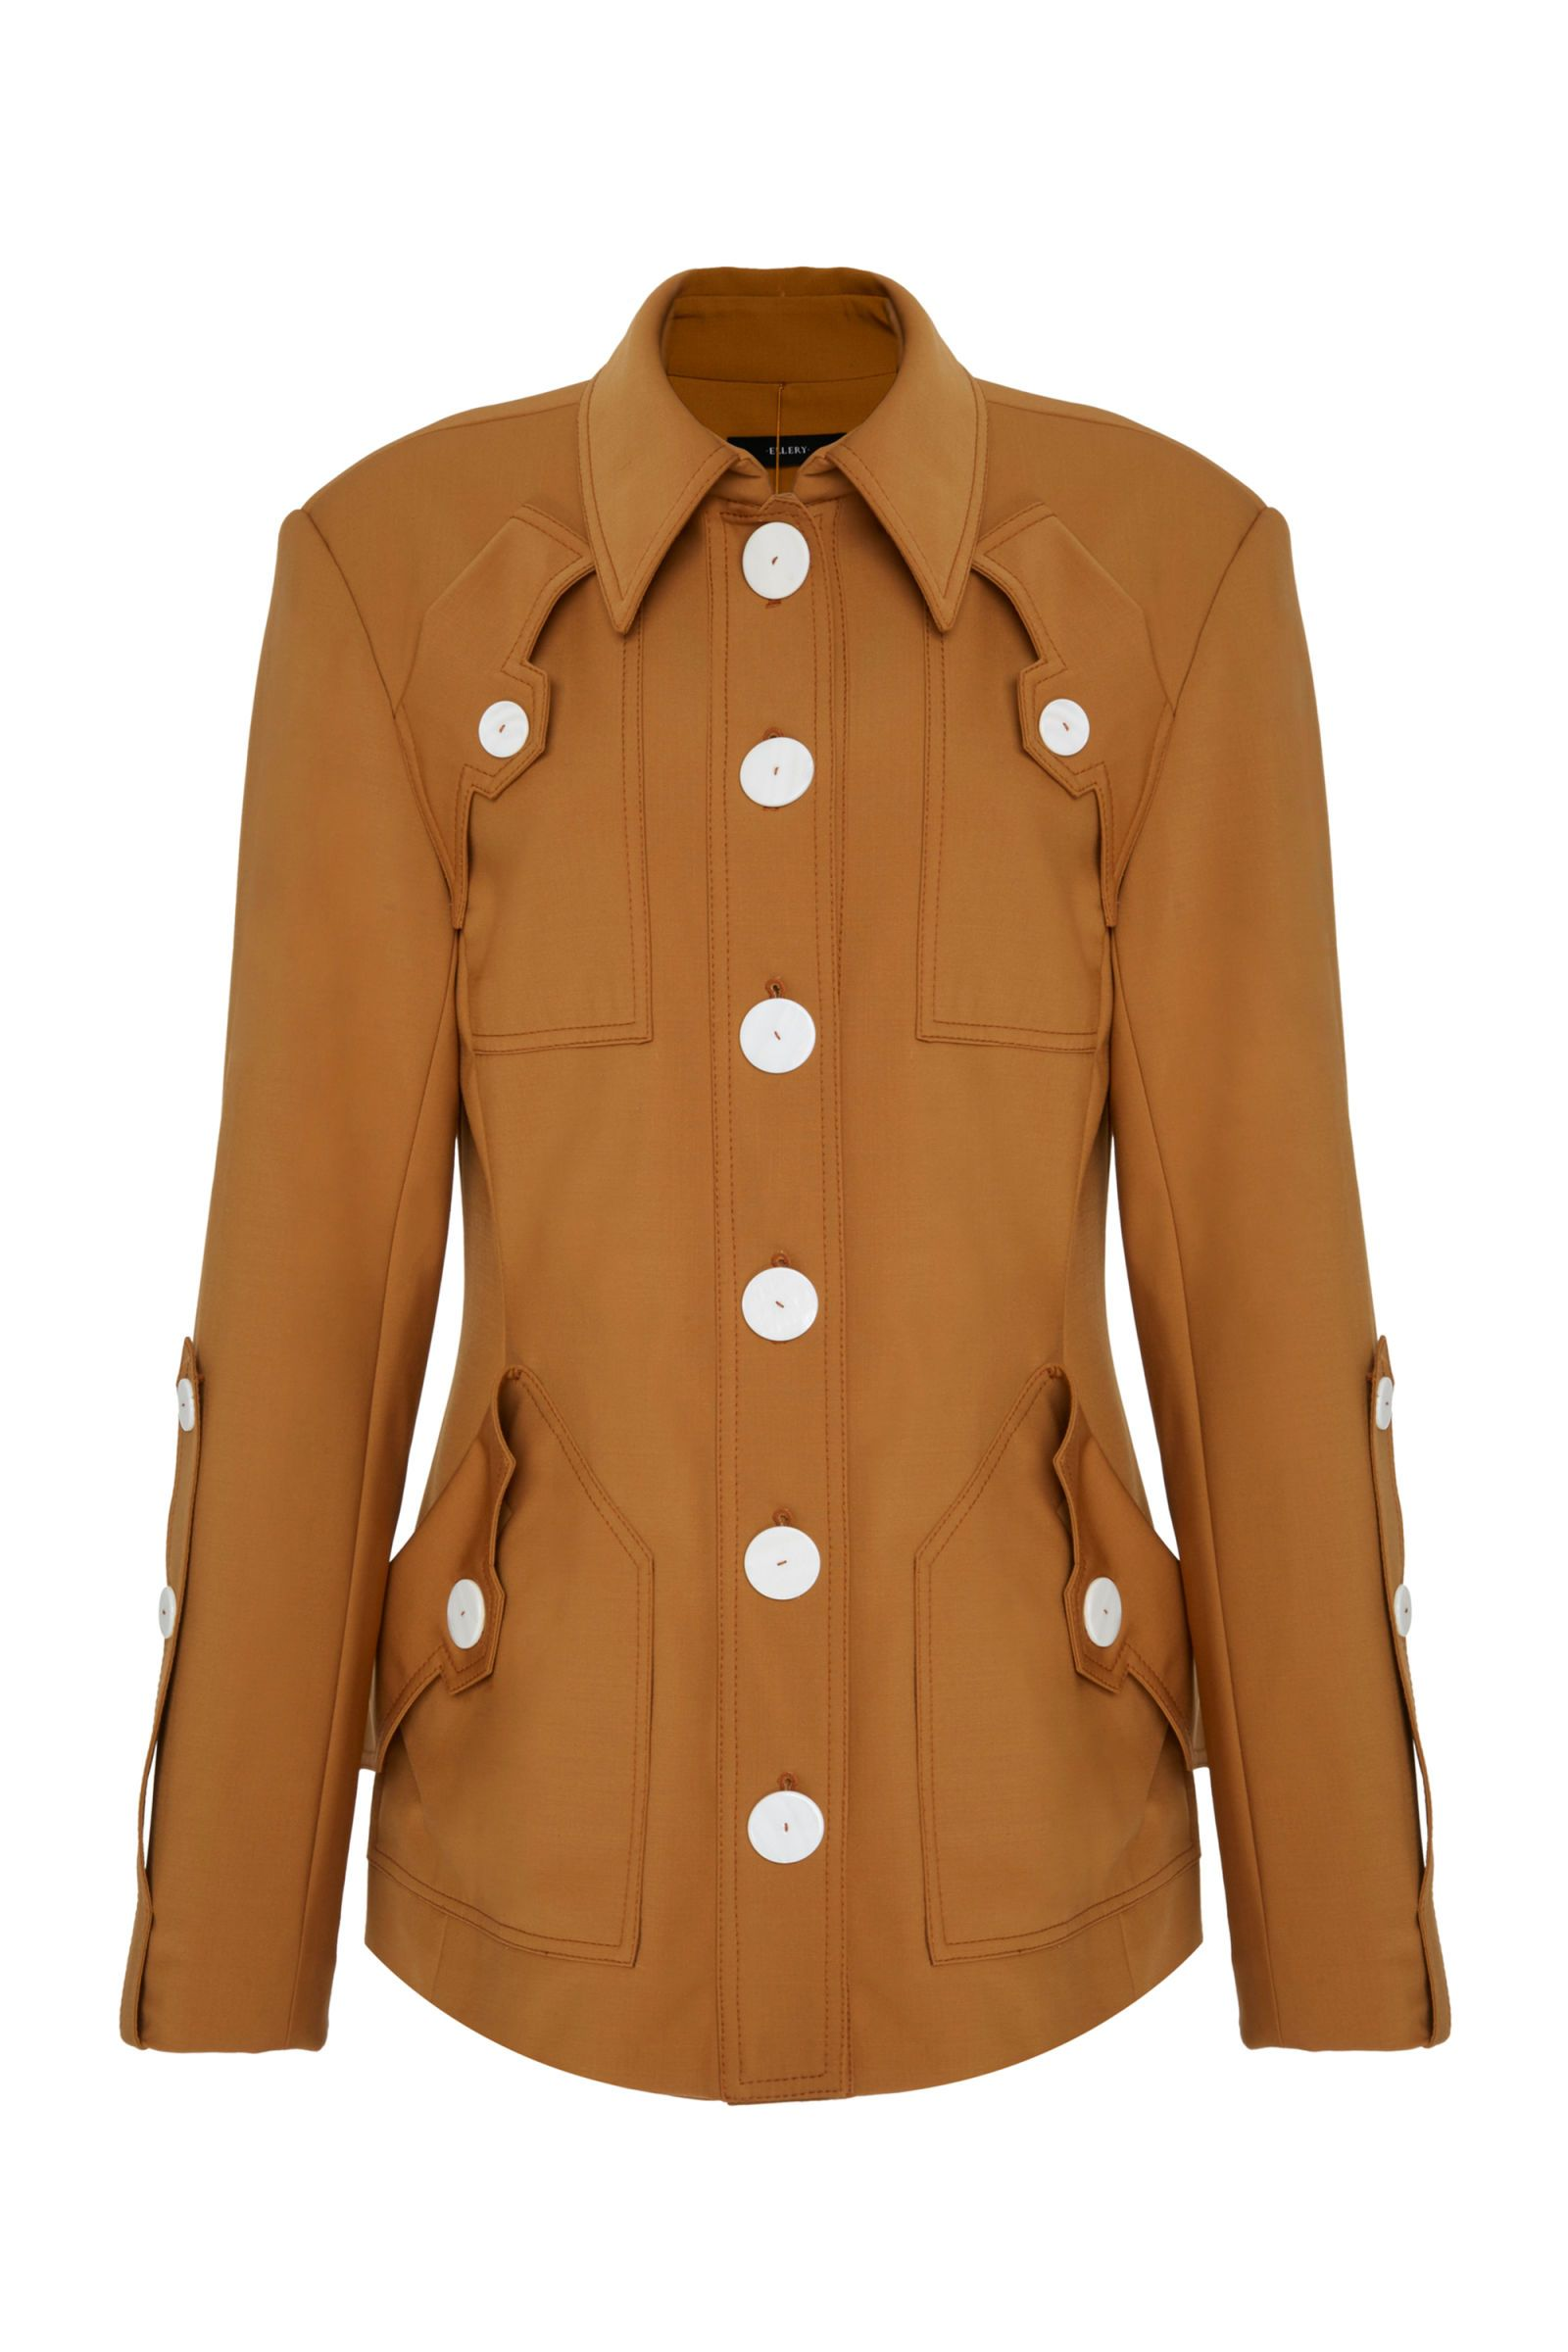 That '70s Jacket